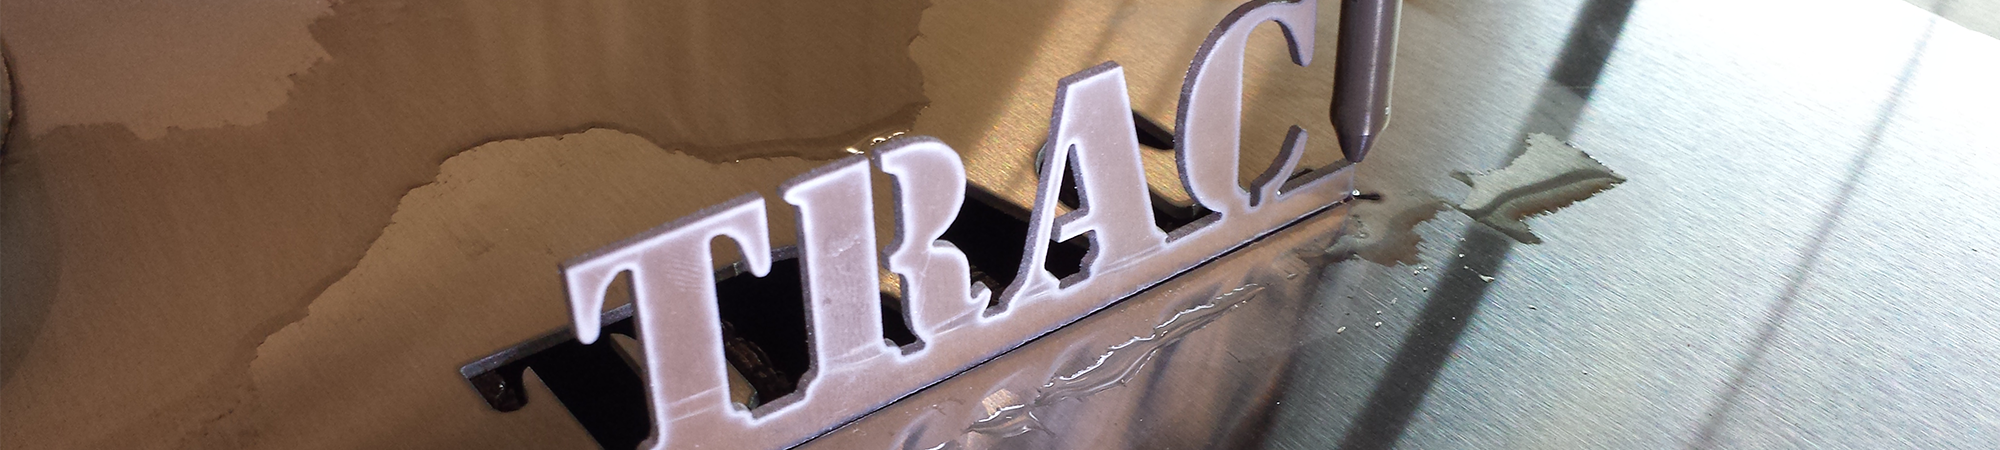 Trac Precision name freshly cut from metal on the water jet.